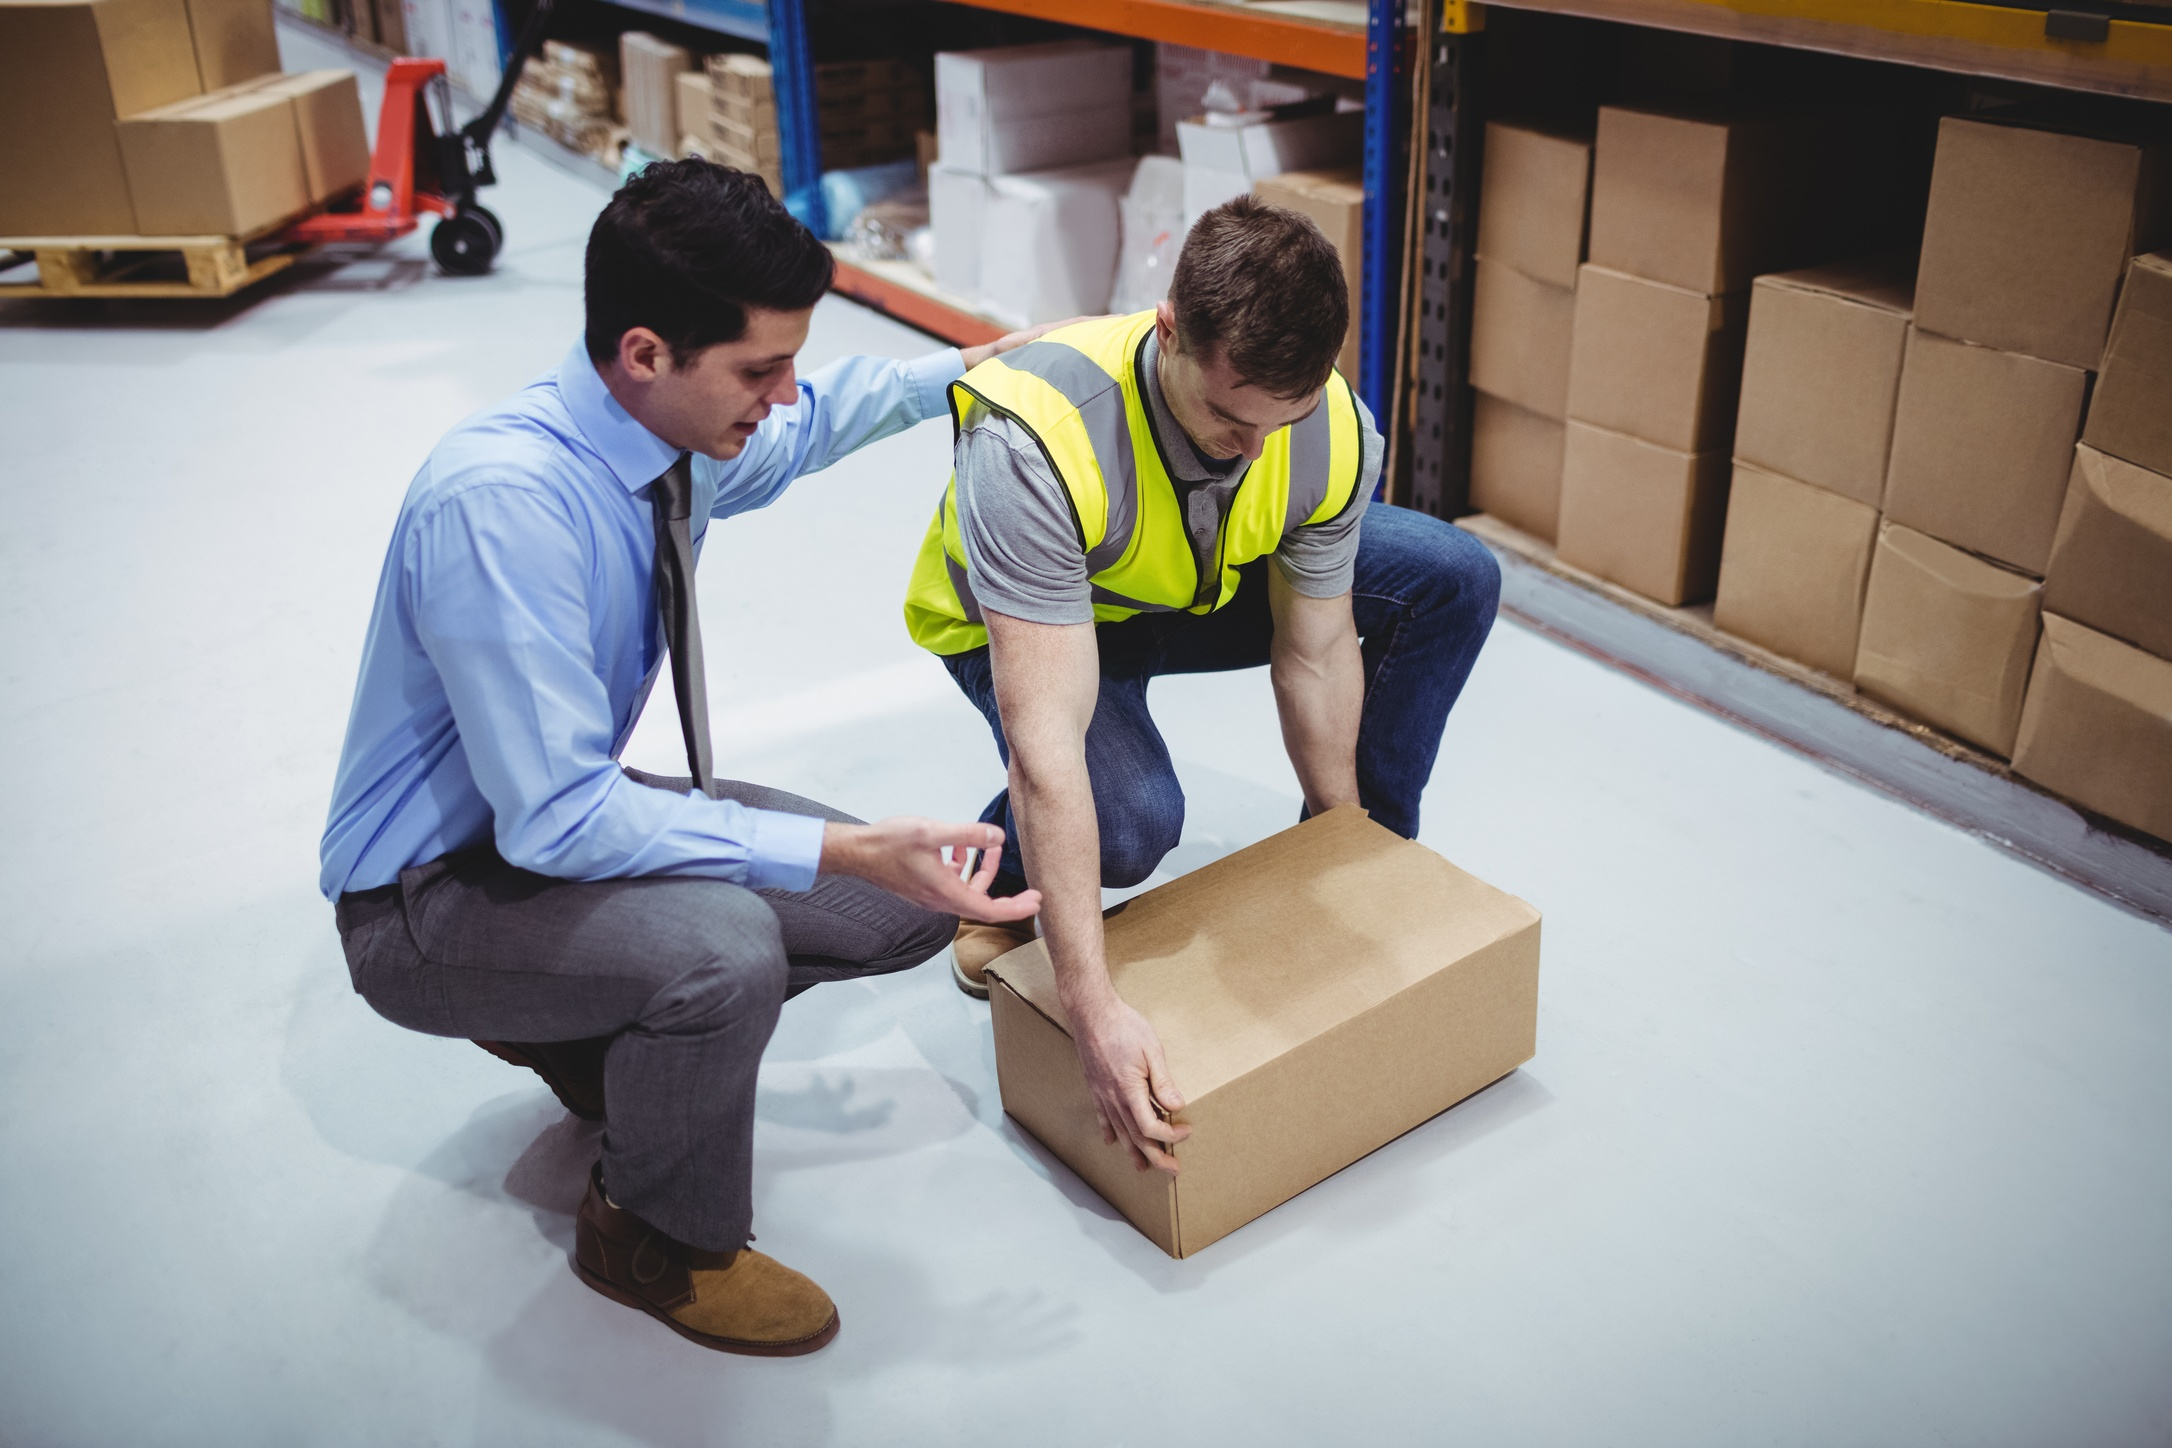 An Overview Of What Manual Handling Training Is